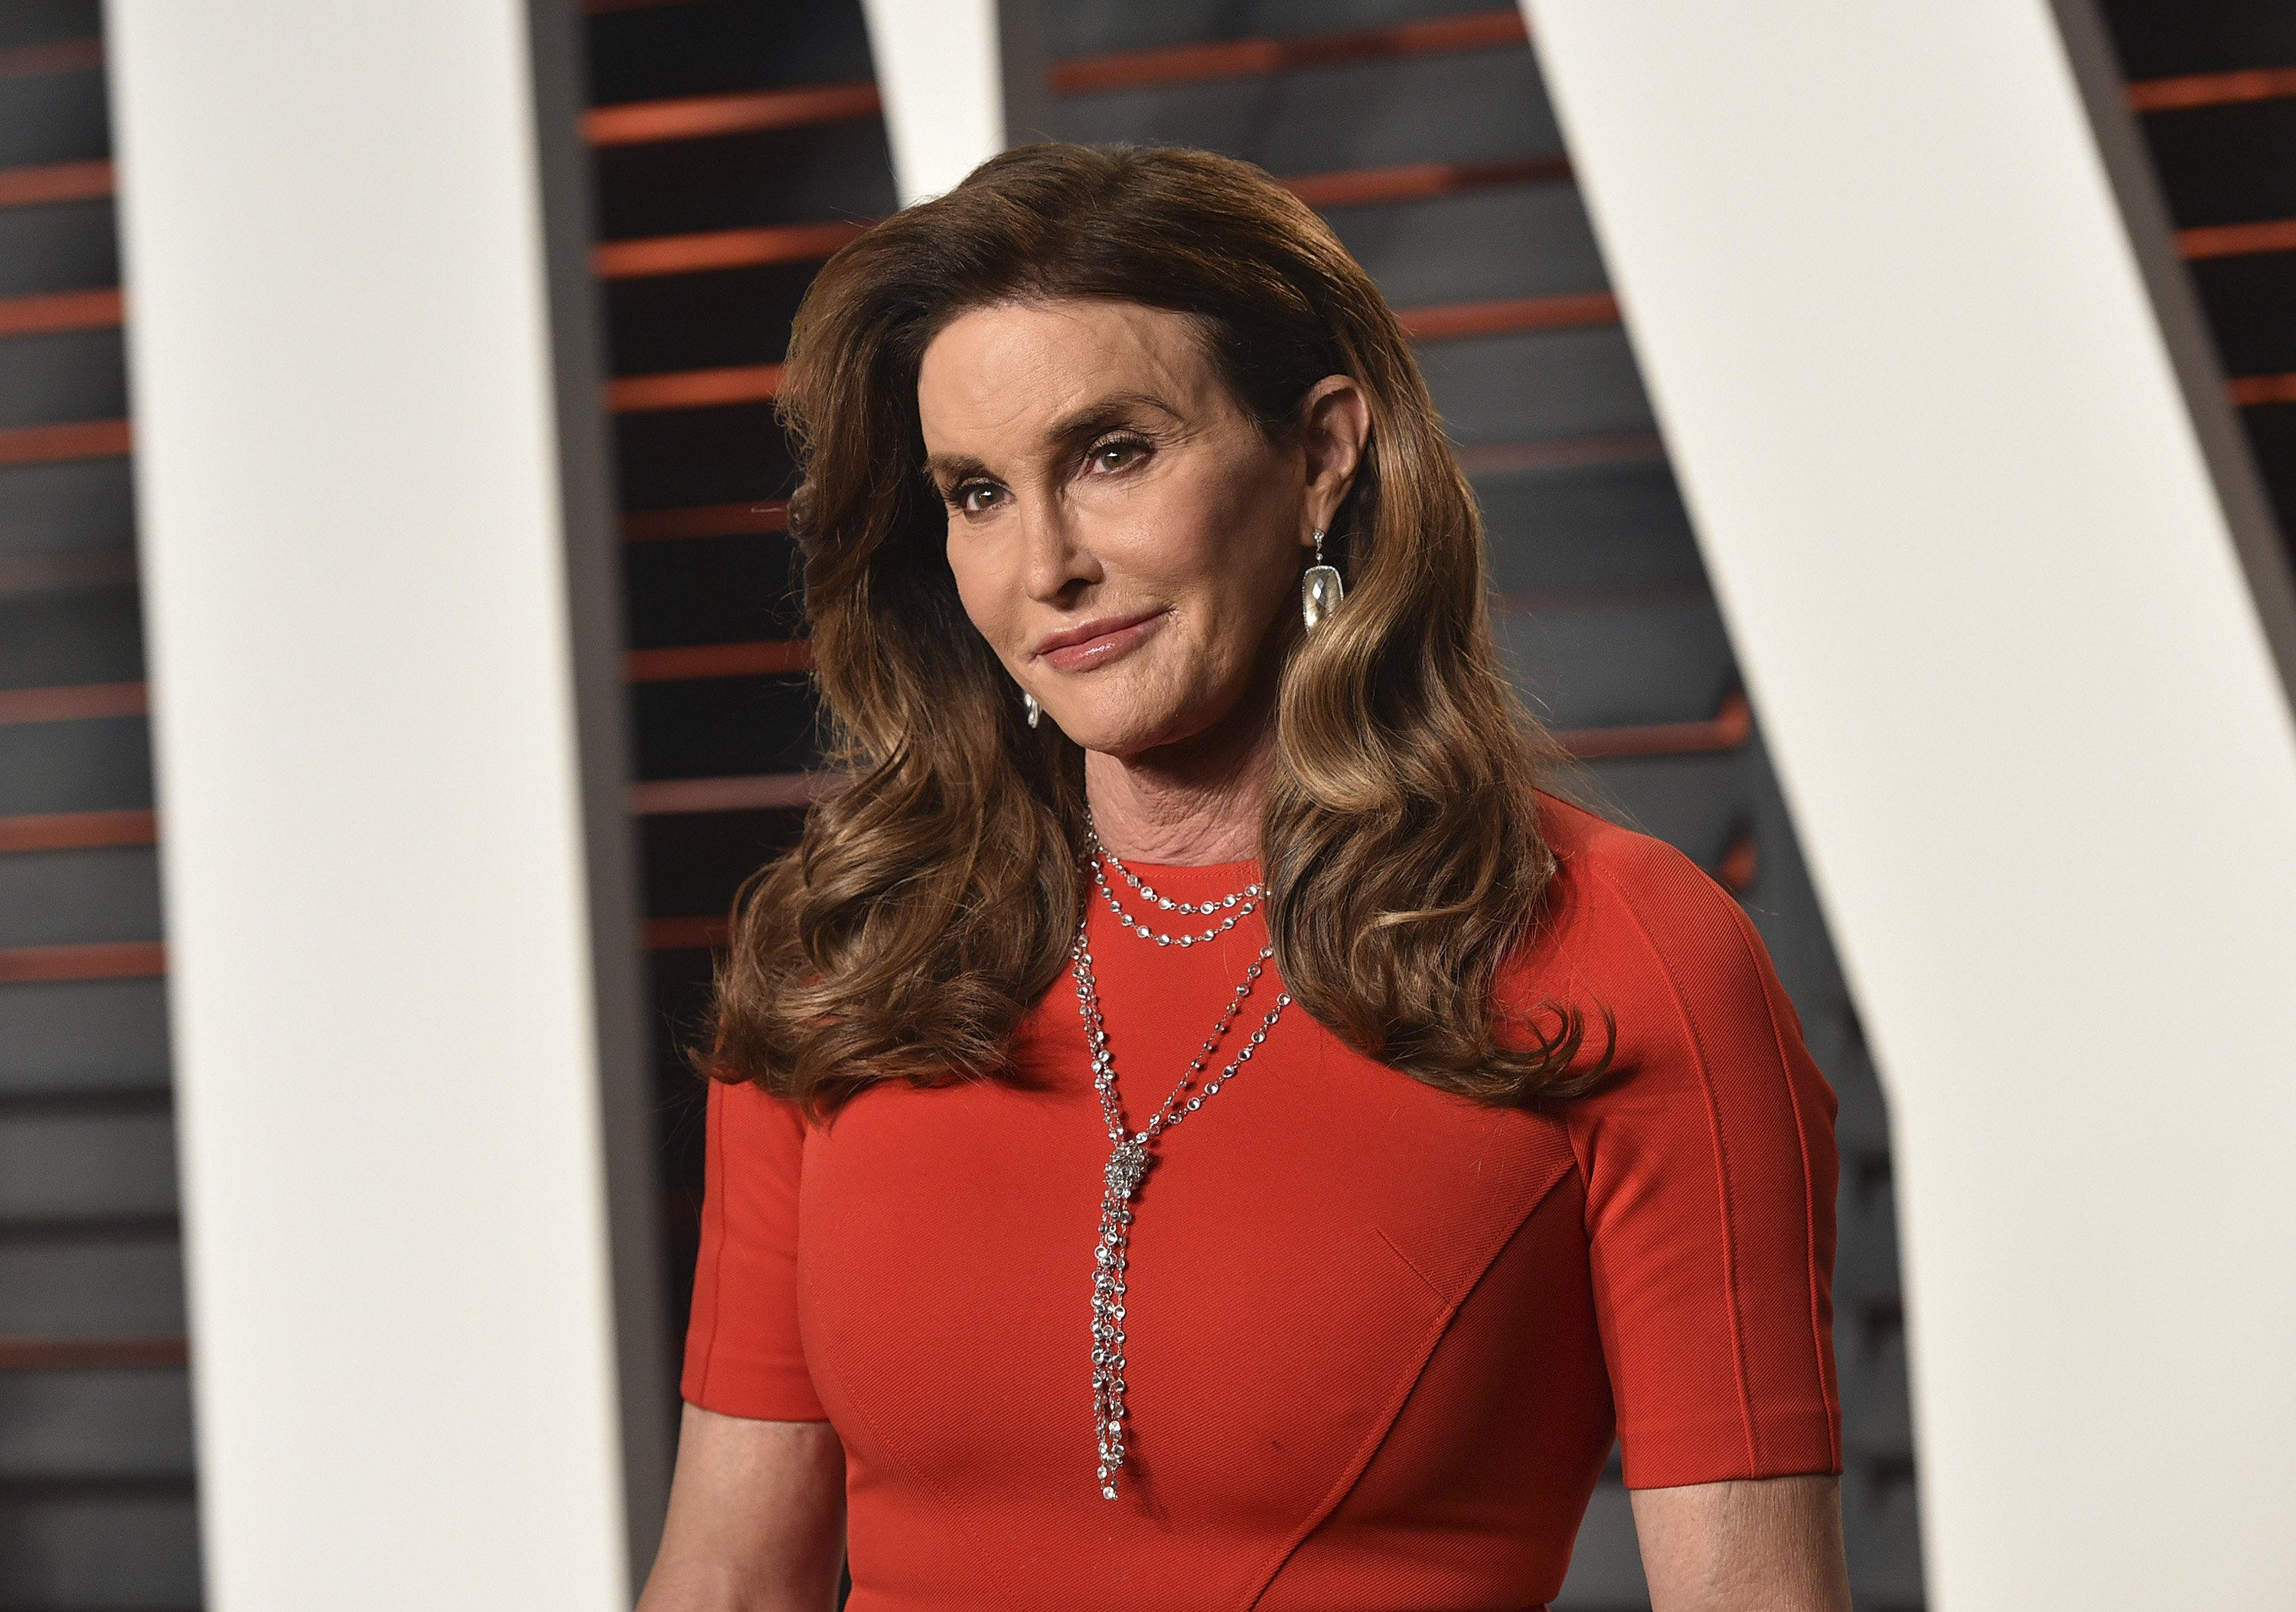 Image Credits: Getty Images / John Shearer | TV personality Caitlyn Jenner arrives at the 2016 Vanity Fair Oscar Party Hosted By Graydon Carter at Wallis Annenberg Center for the Performing Arts on February 28, 2016 in Beverly Hills, California.